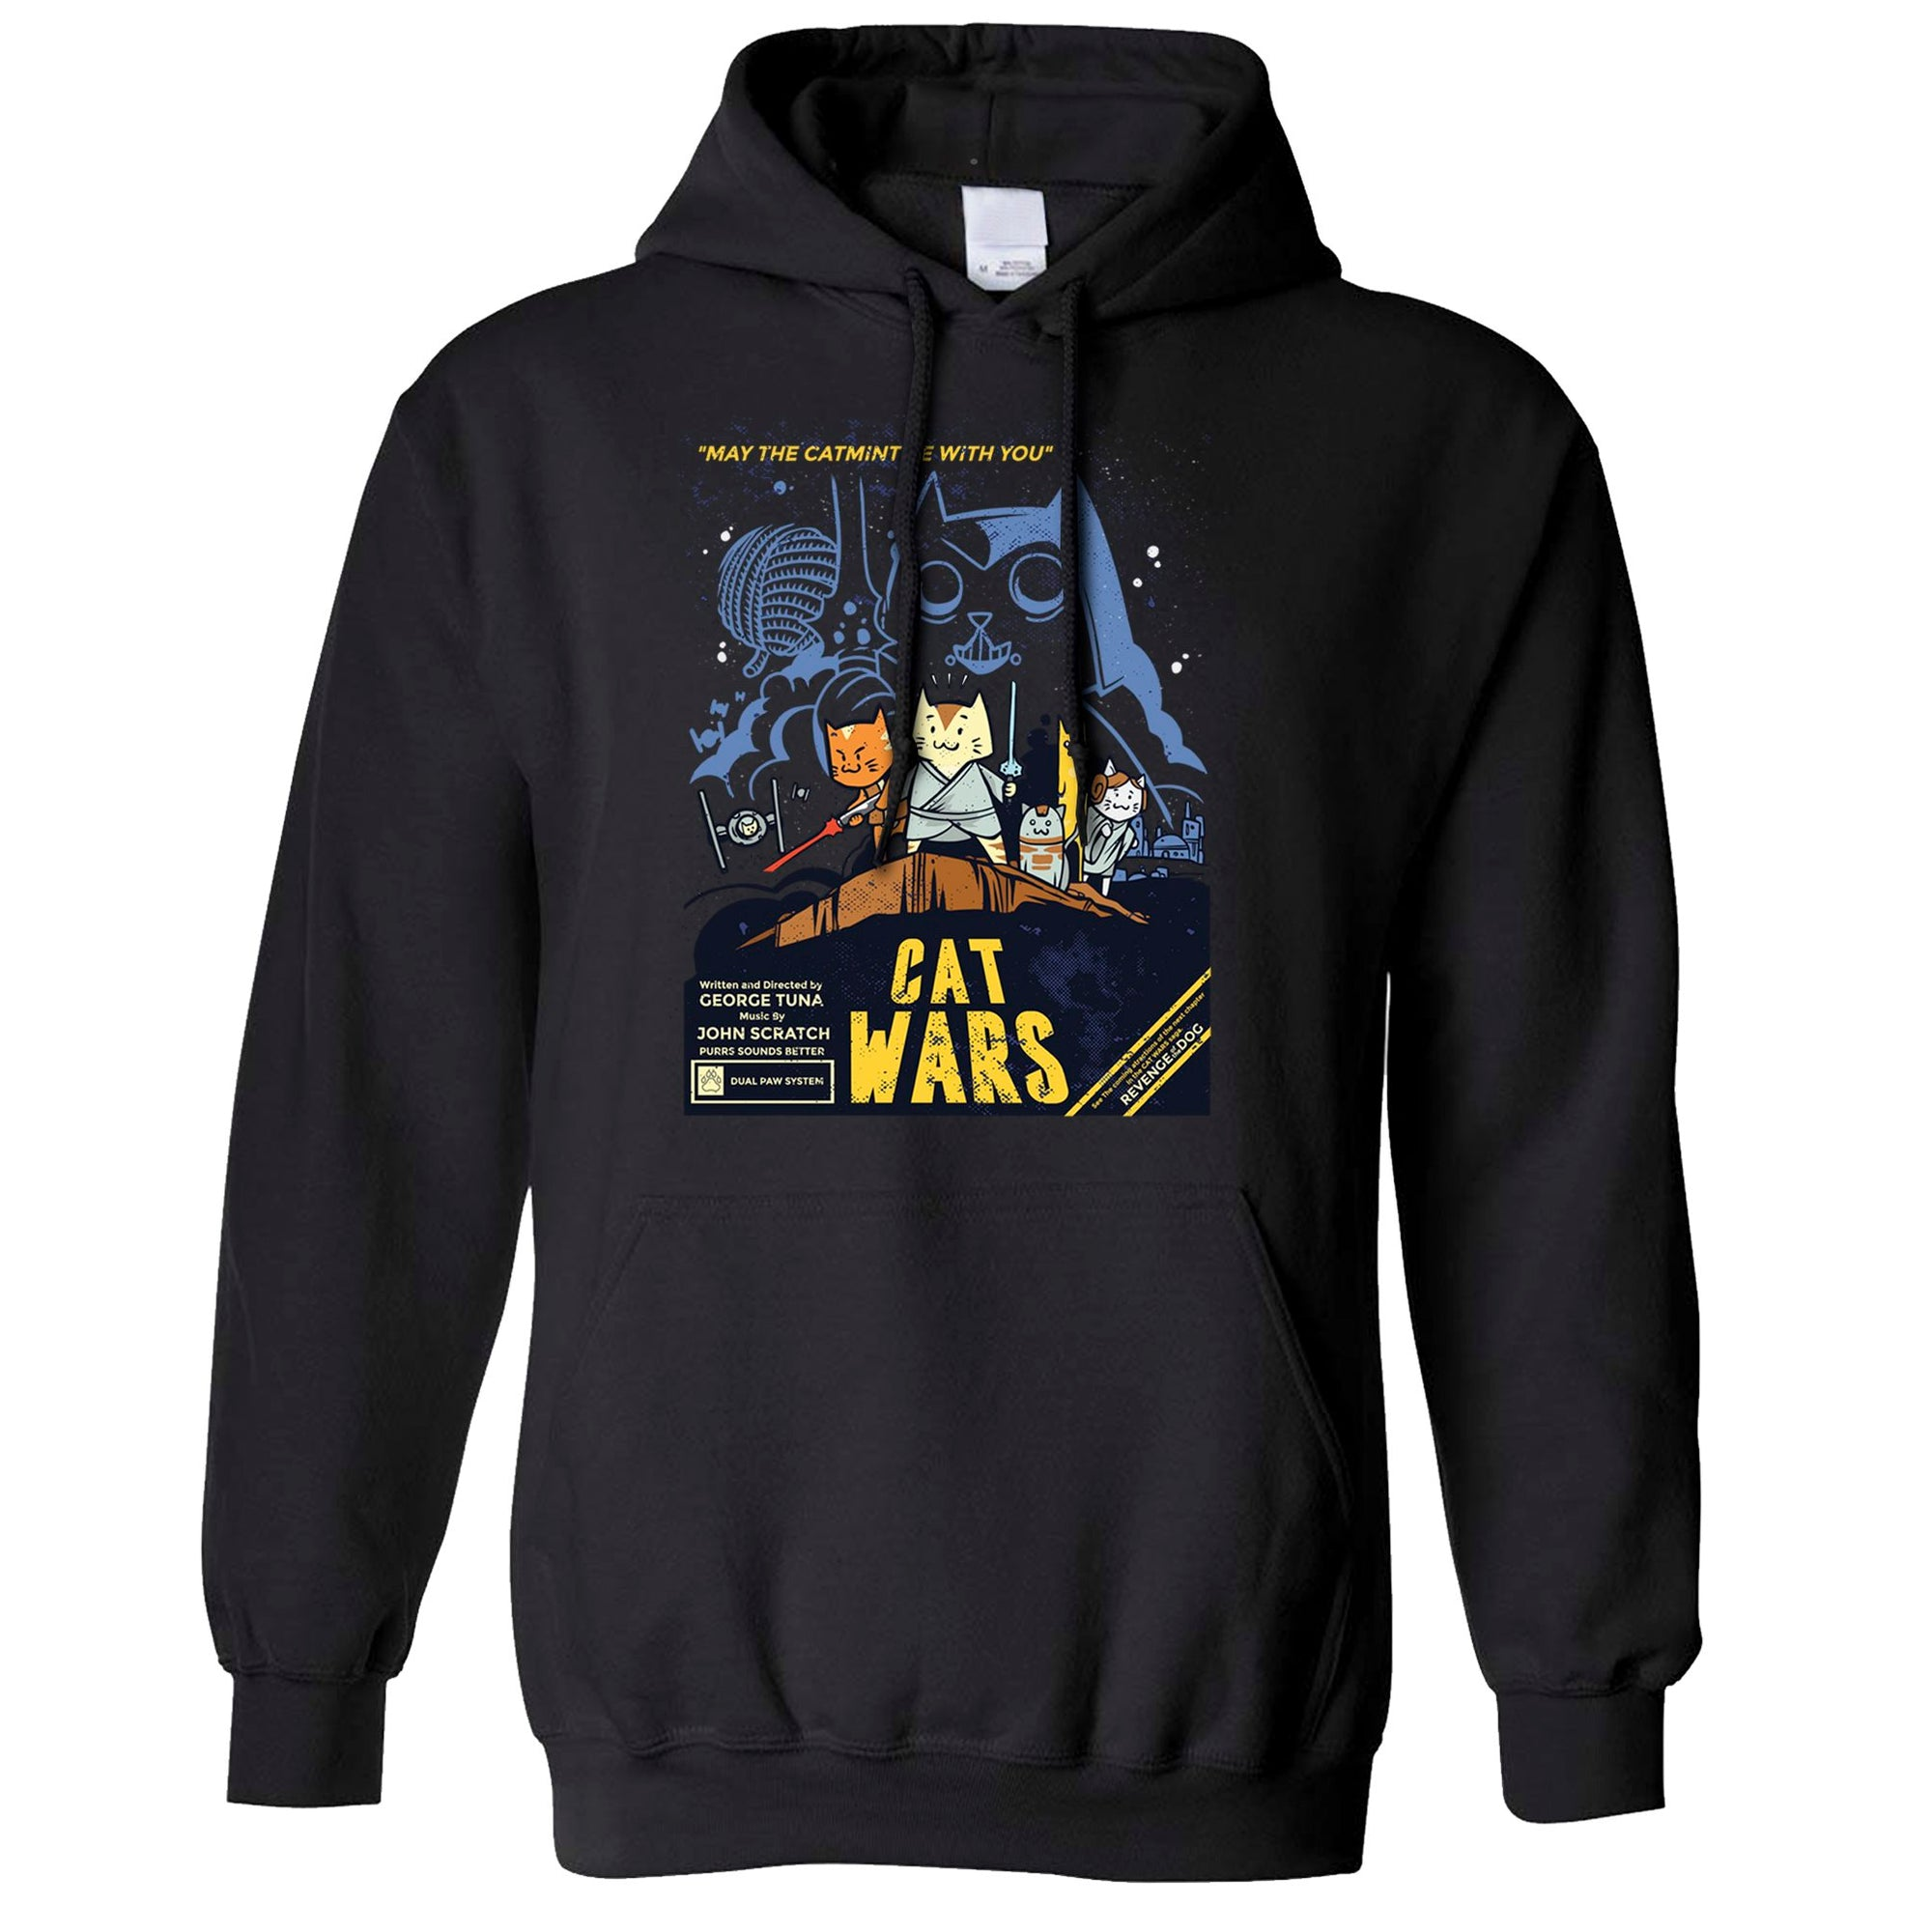 Cat Wars Hoodie Funny Star Parody Hooded Jumper